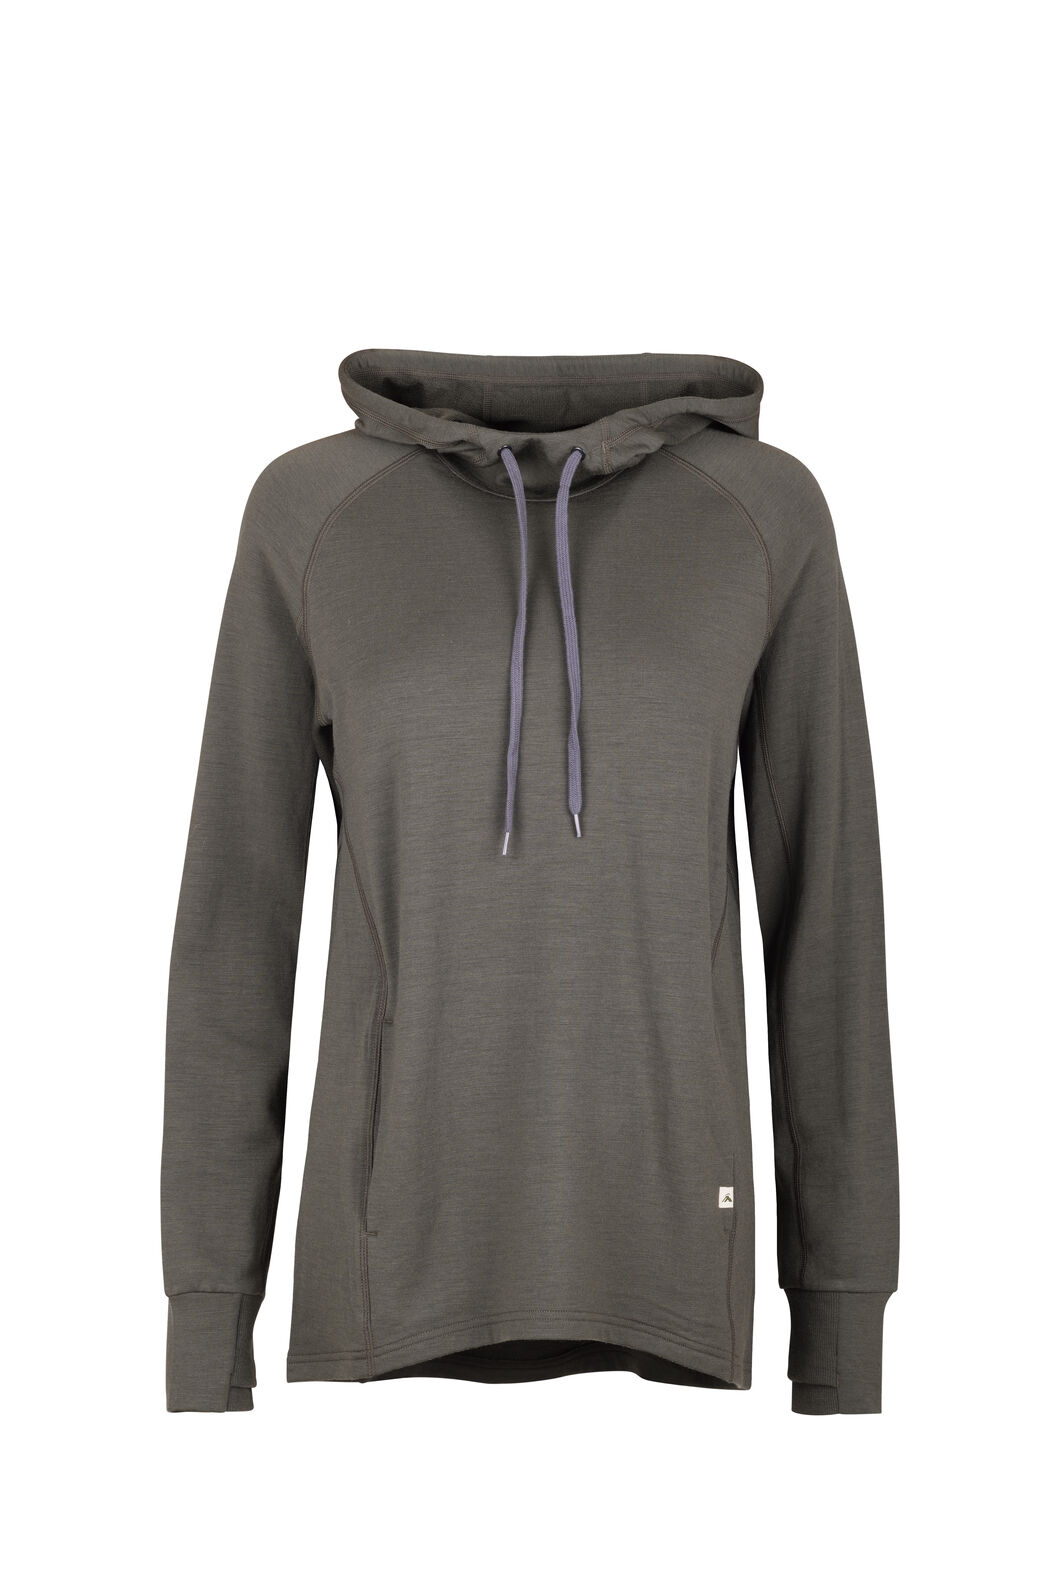 Macpac Lucille Merino Hooded Pullover — Women's, Grape Leaf, hi-res